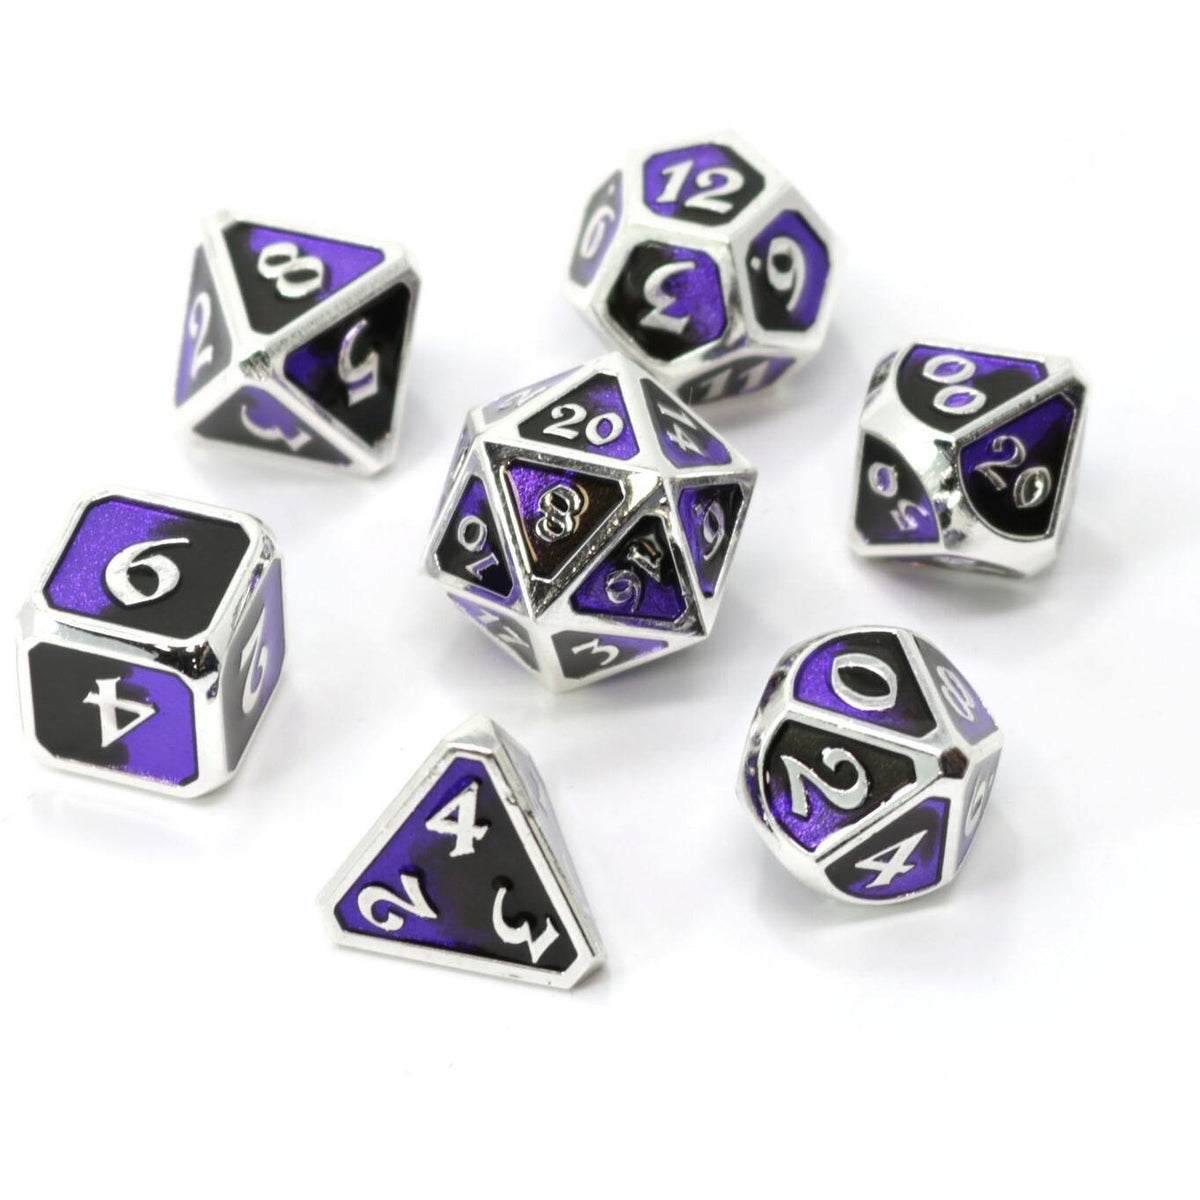 DIE HARD METAL DICE - DARK ARTS MALICE